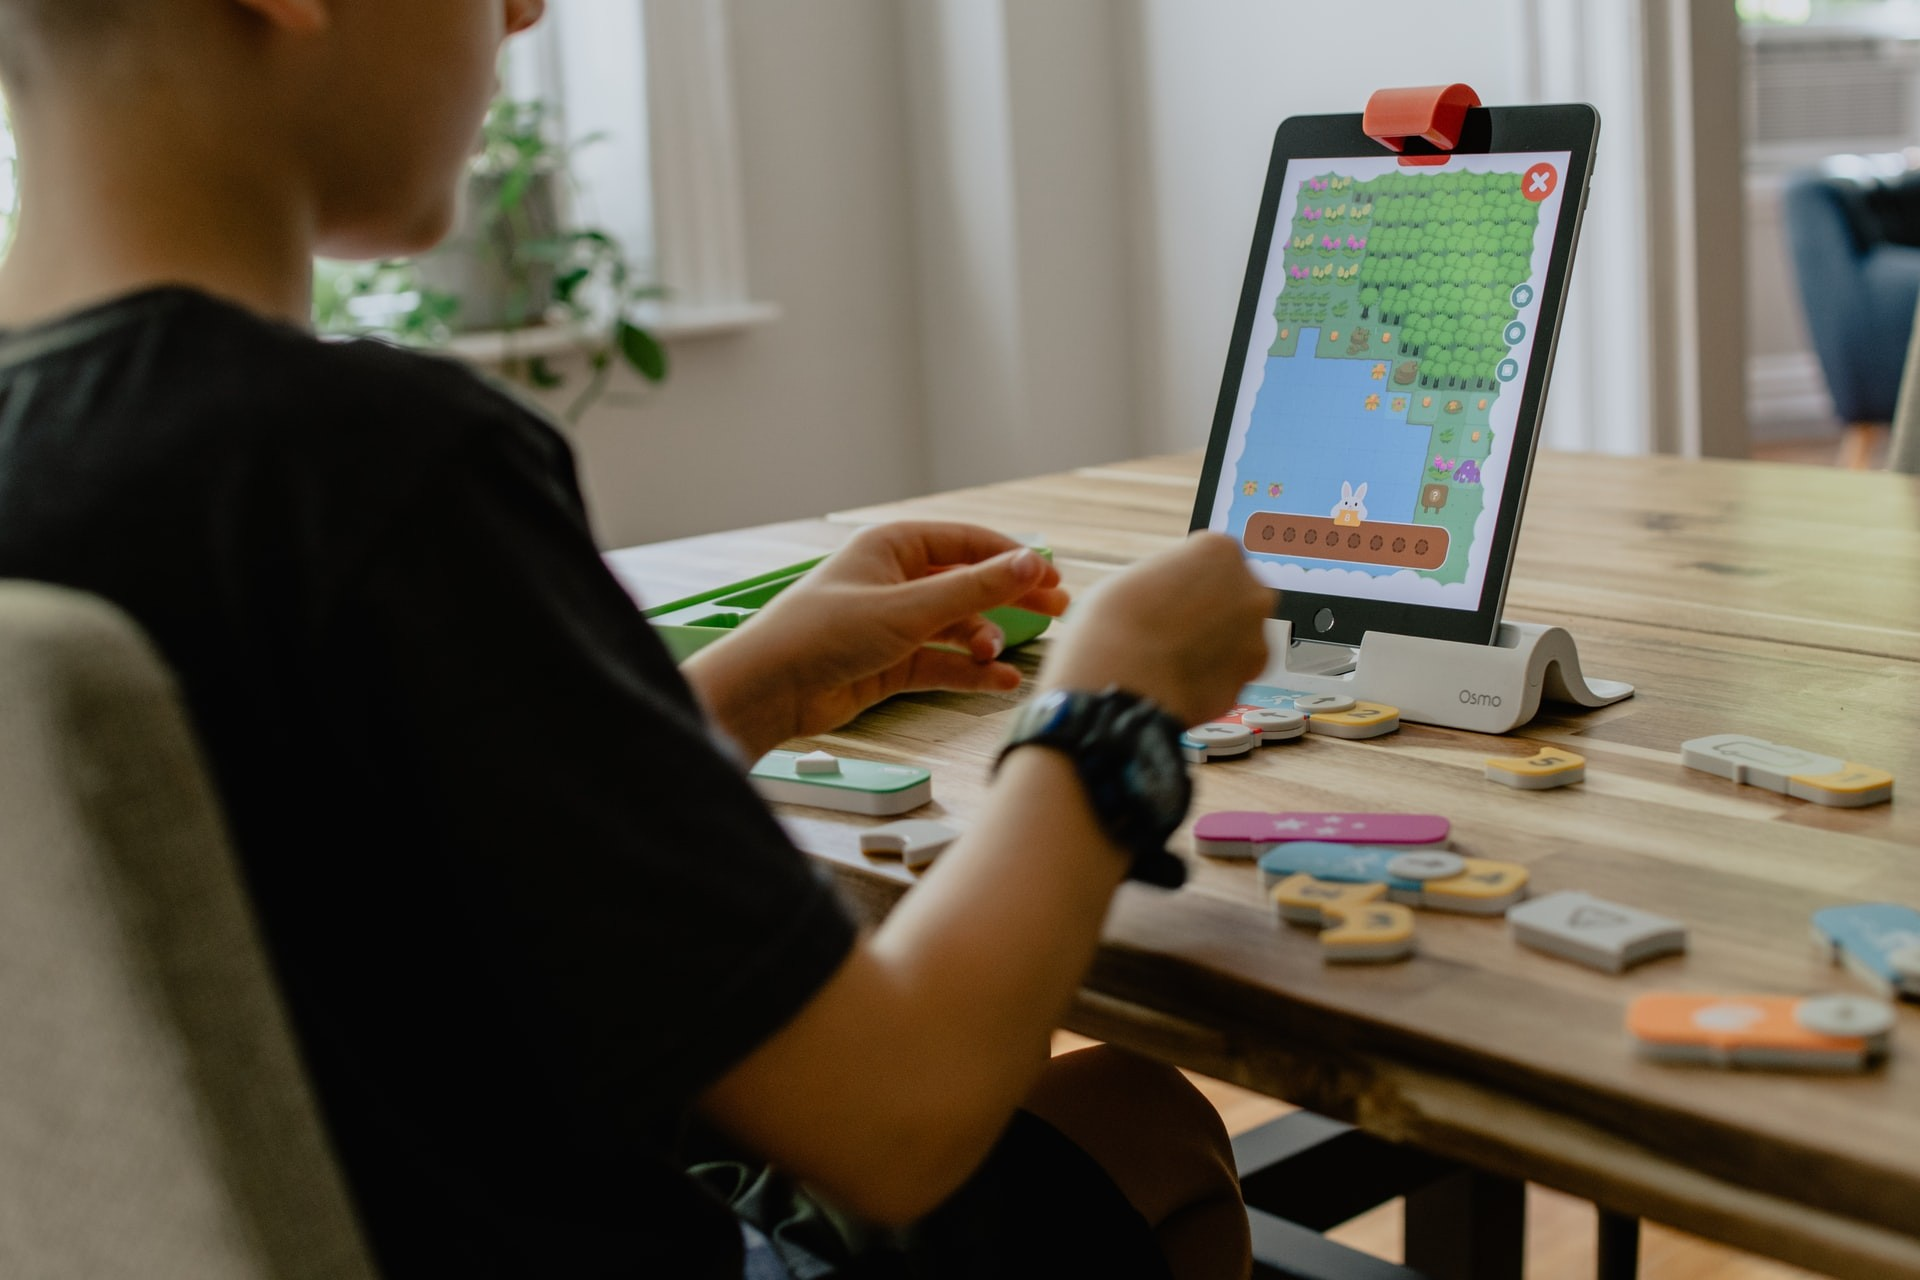 Young boy plays with an online learning game on a tablet while sitting at a kitchen table.